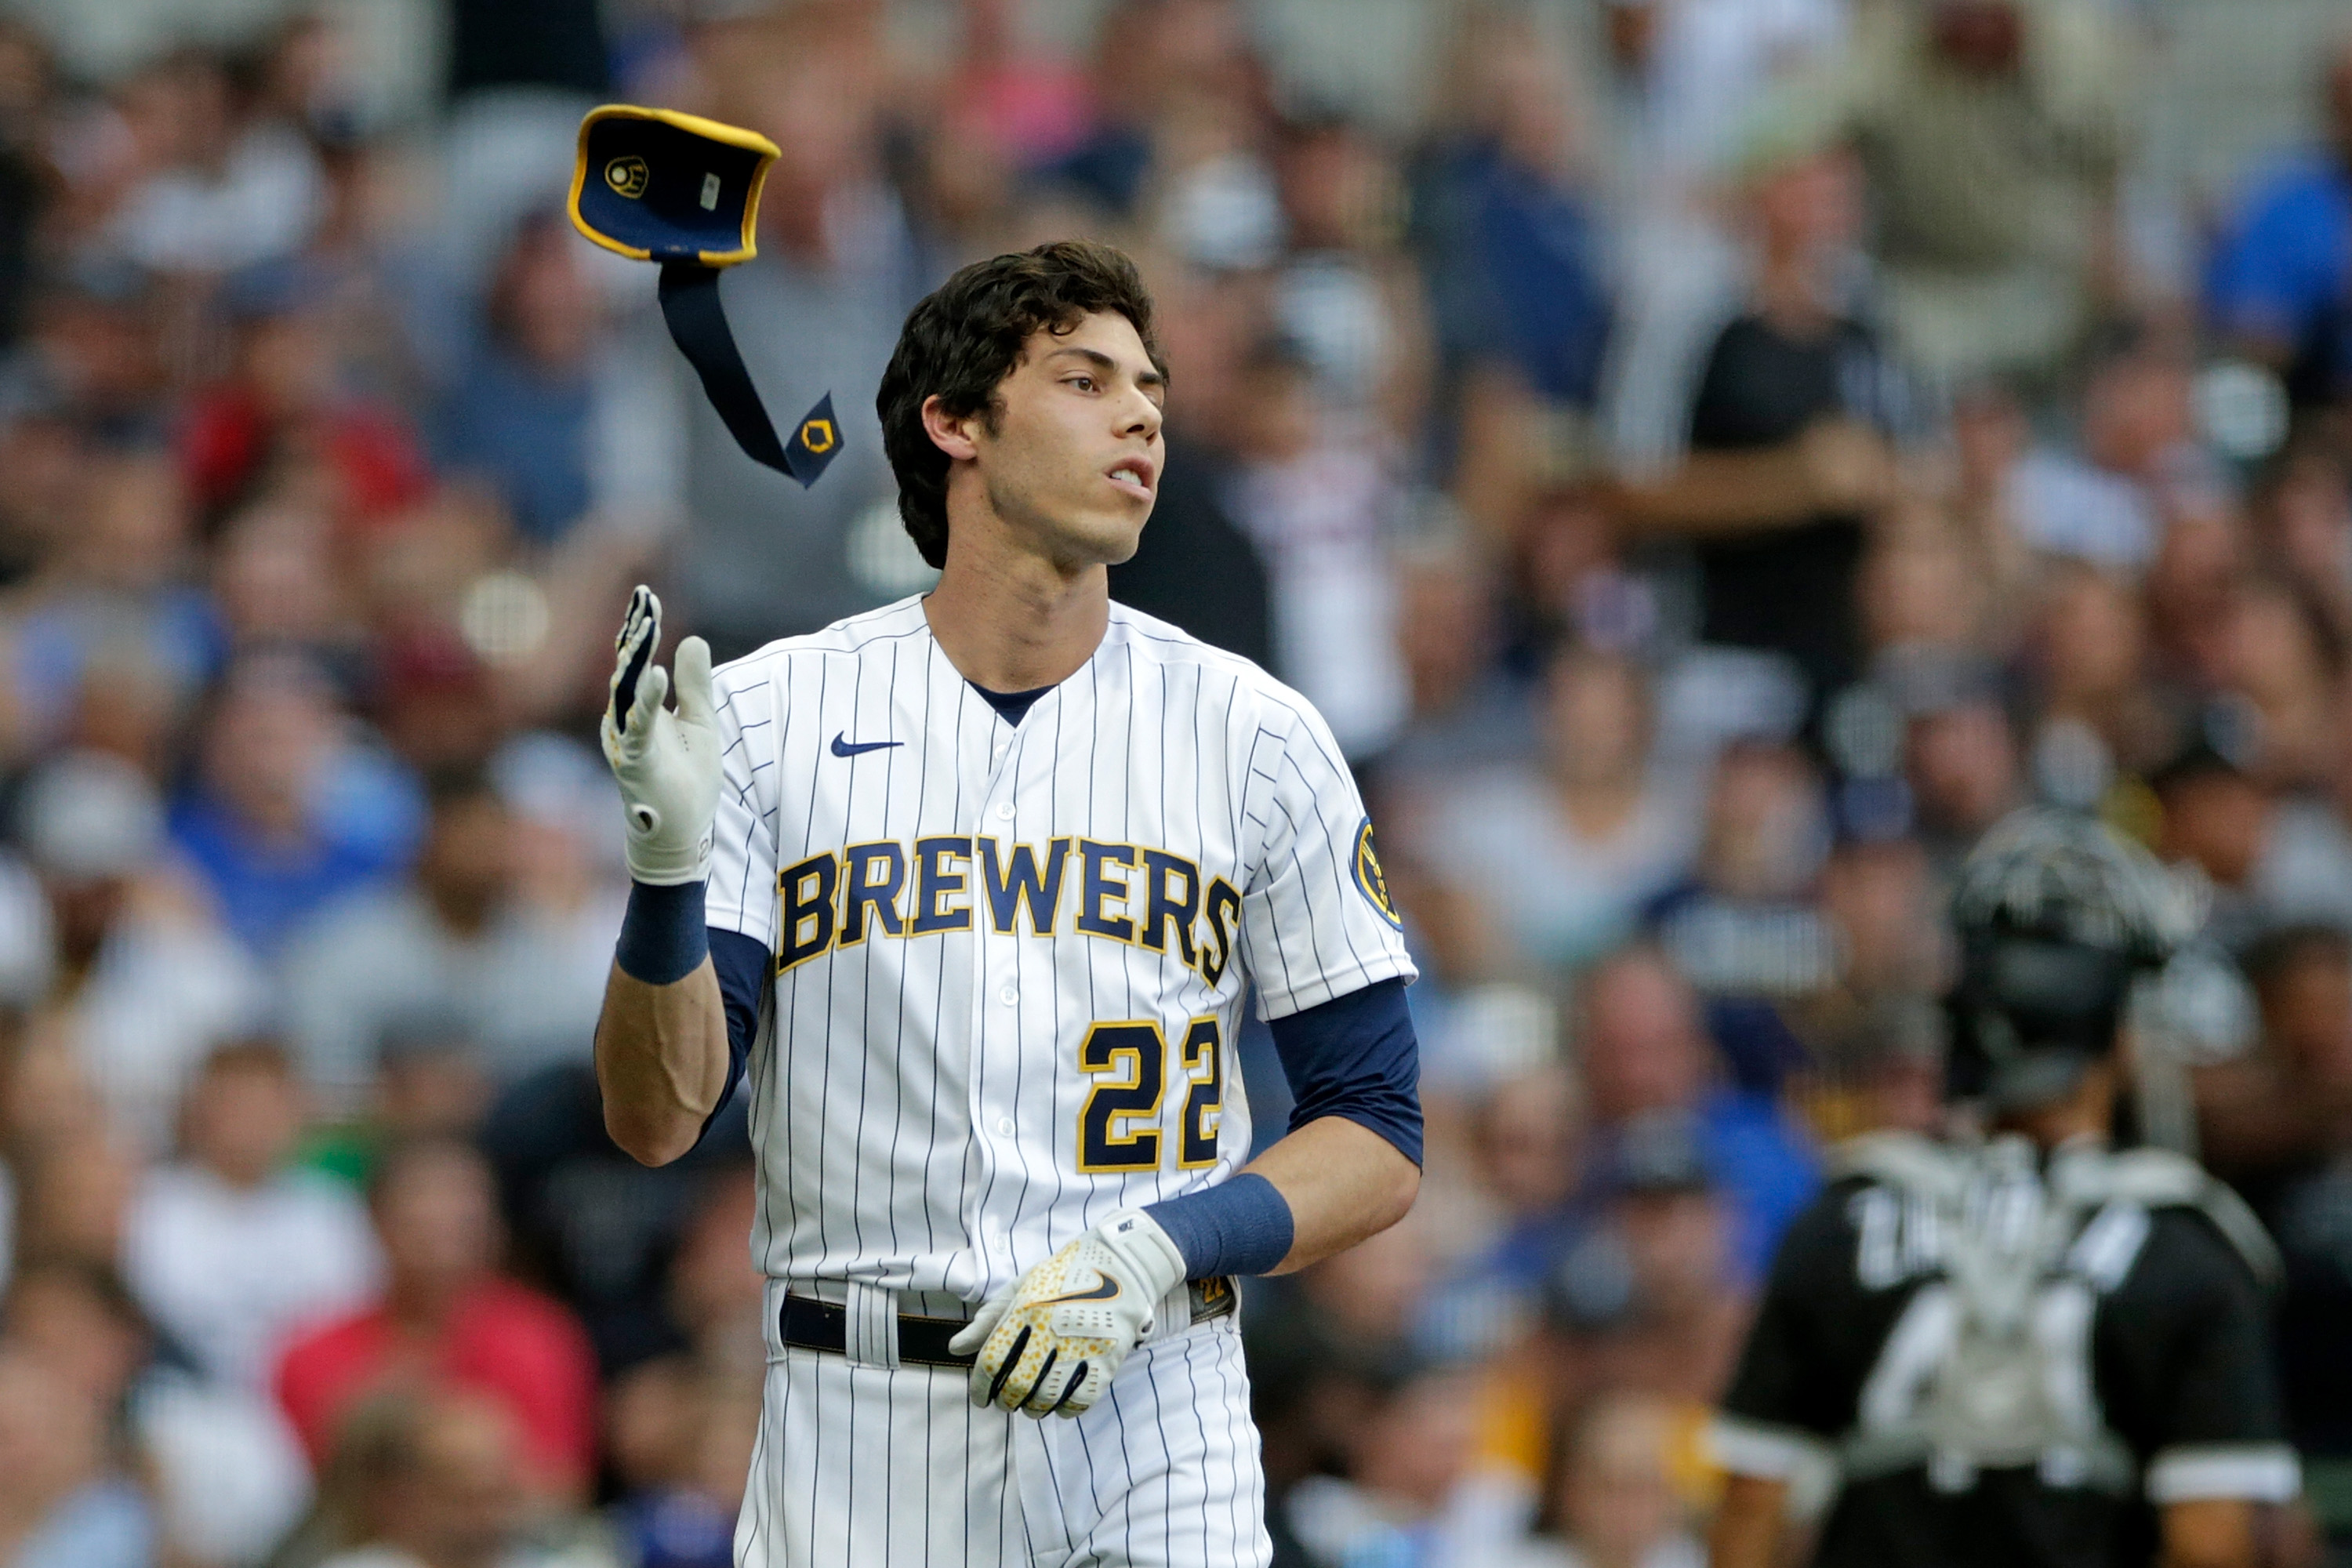 Christian Yelich #22 of the Milwaukee Brewers strikes out in the third inning against the Chicago White Sox at American Family Field on July 25, 2021 in Milwaukee, Wisconsin.